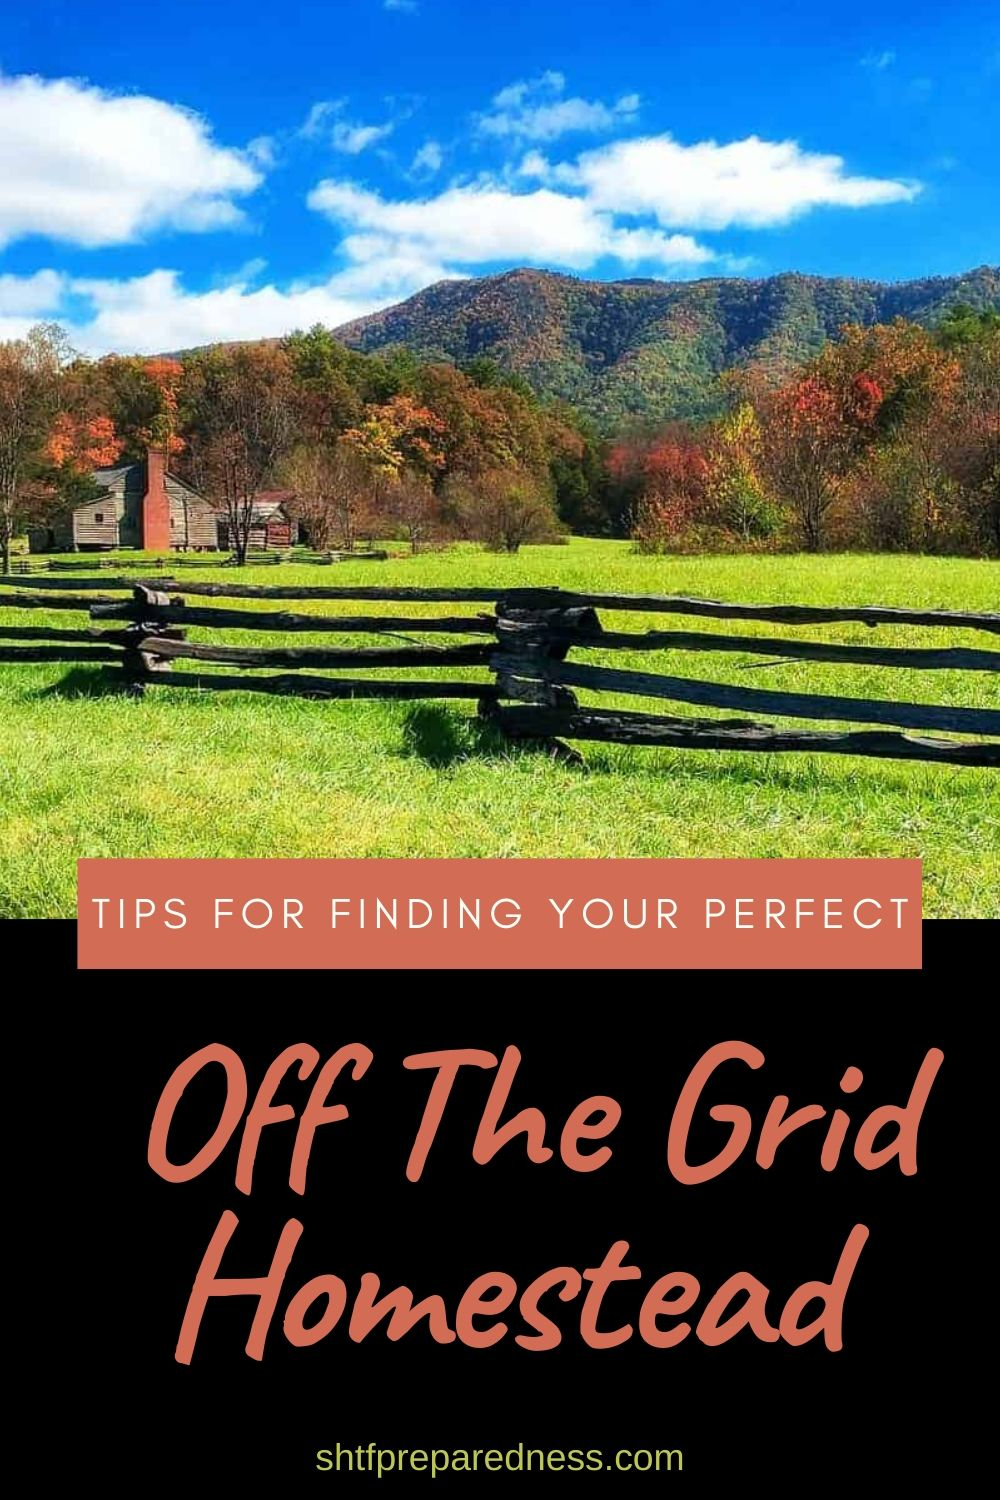 Off grid homesteading tips